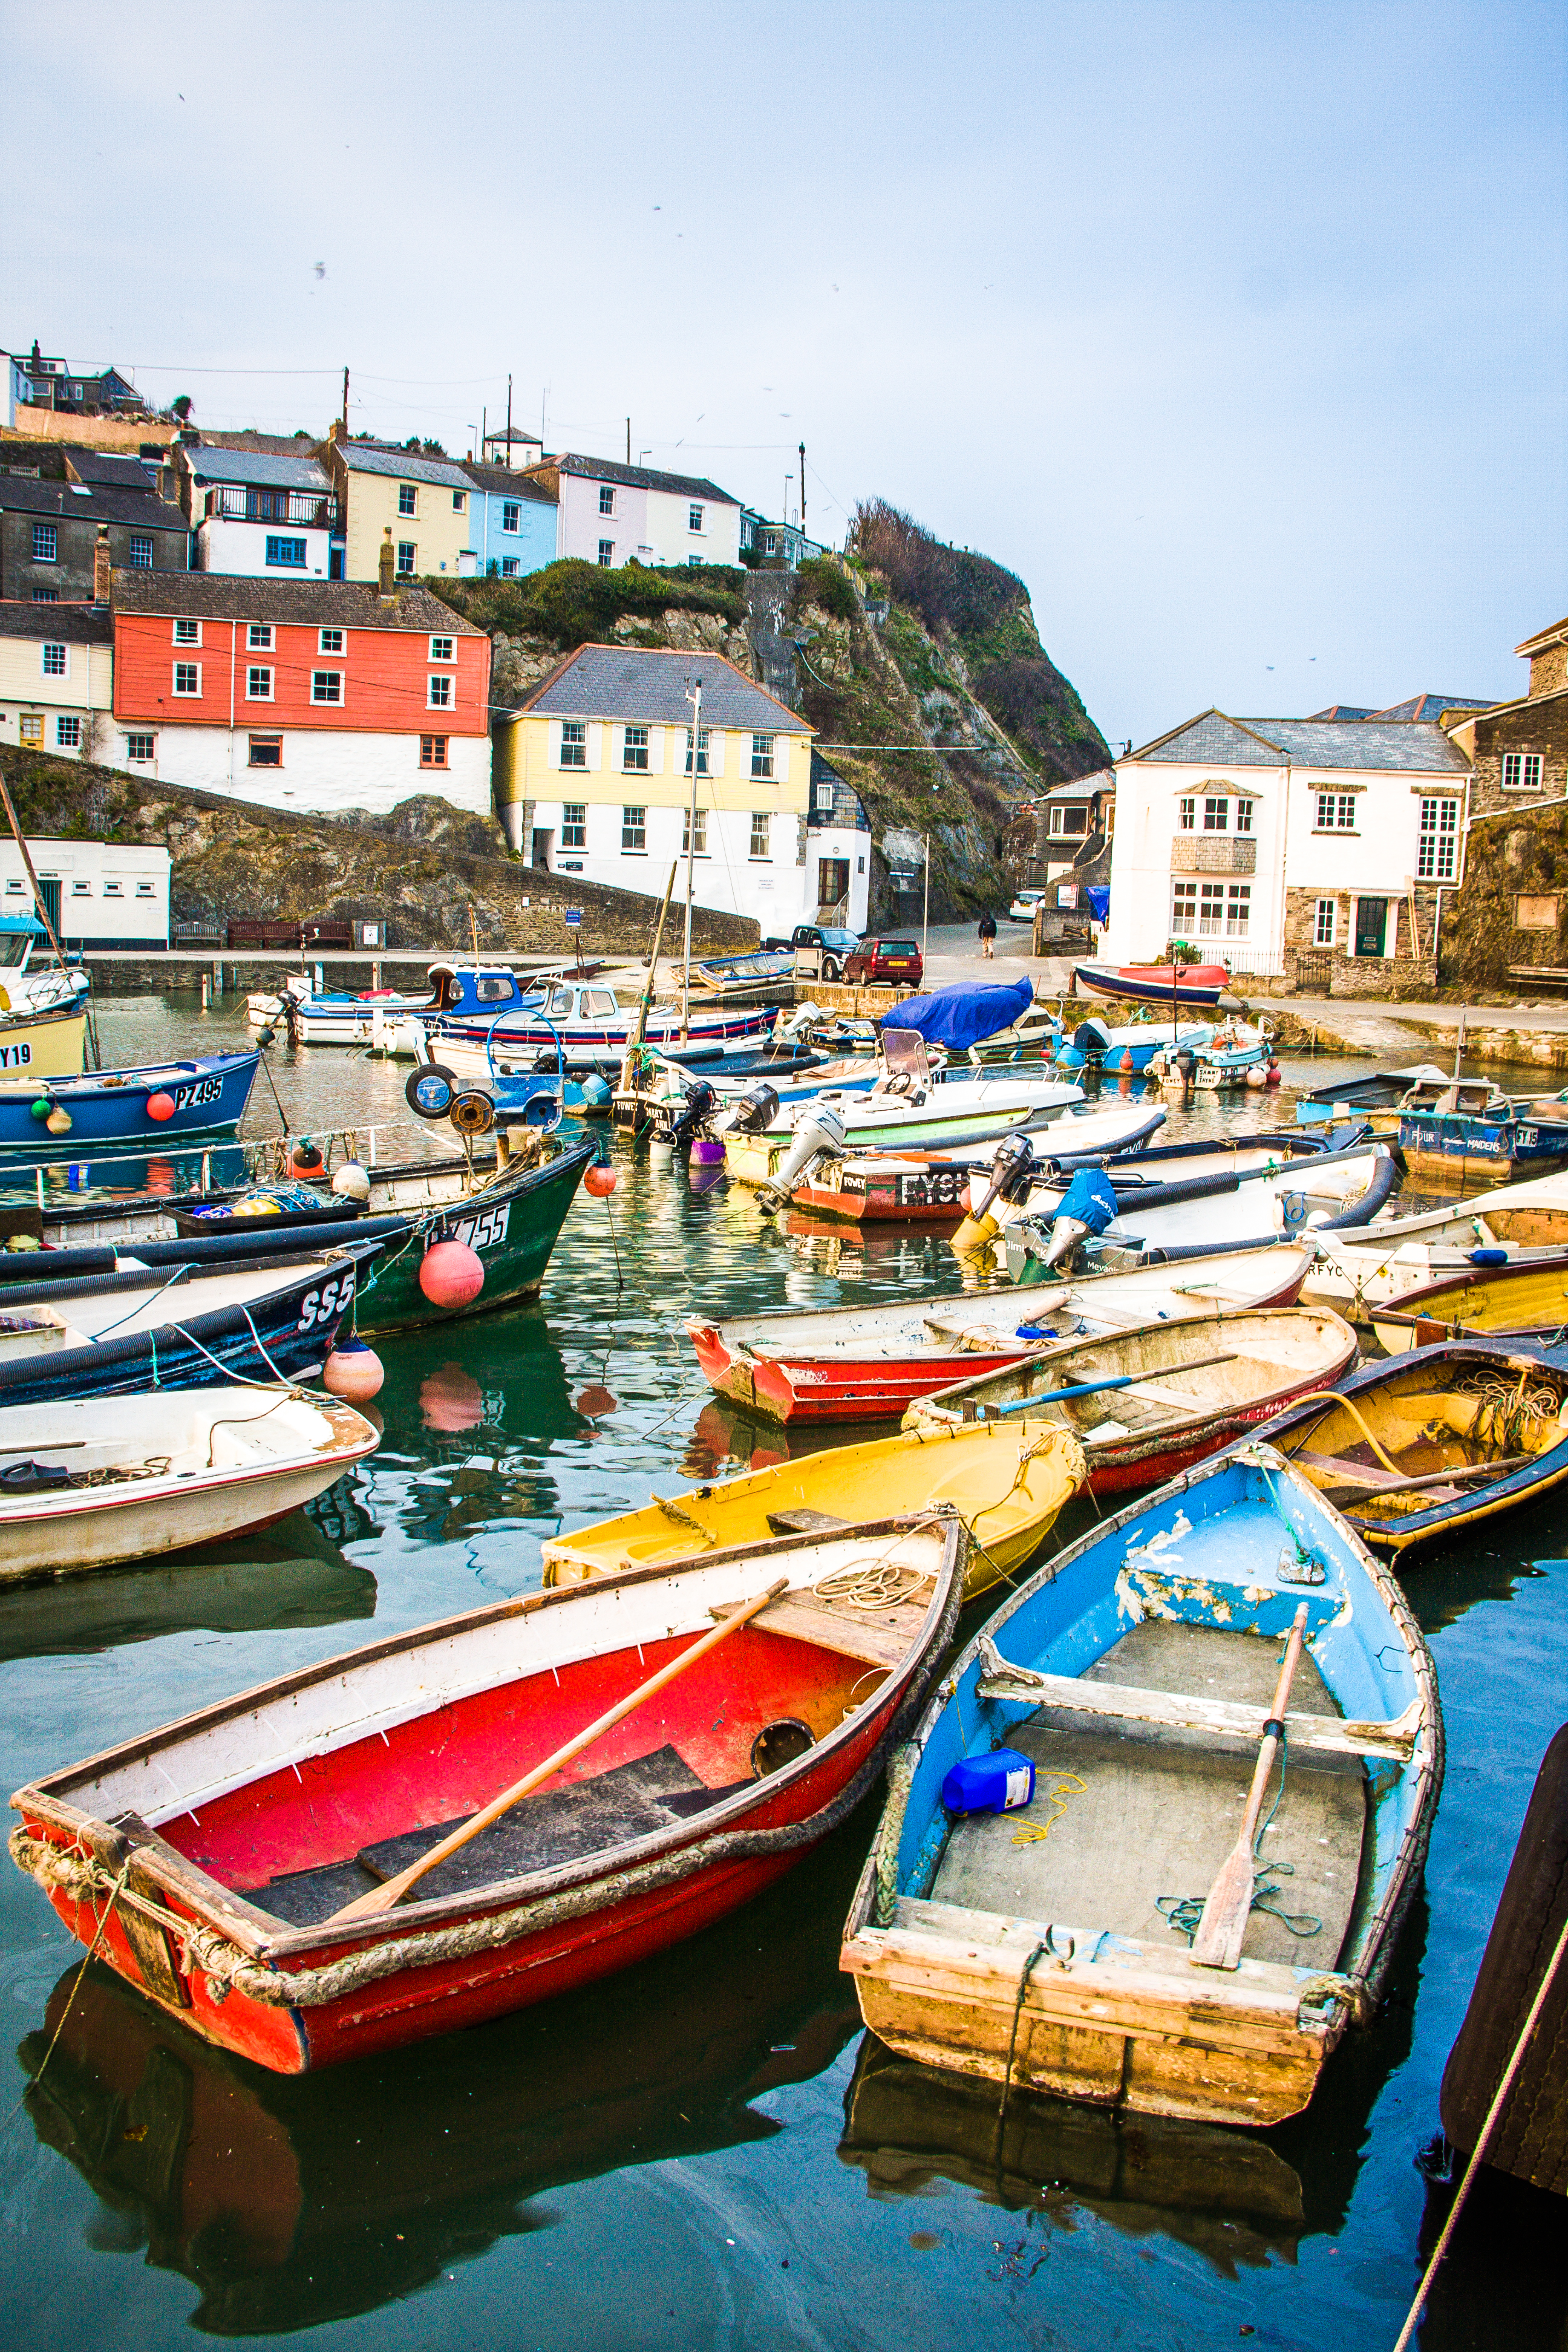 Mevagissey Harbour - Boats